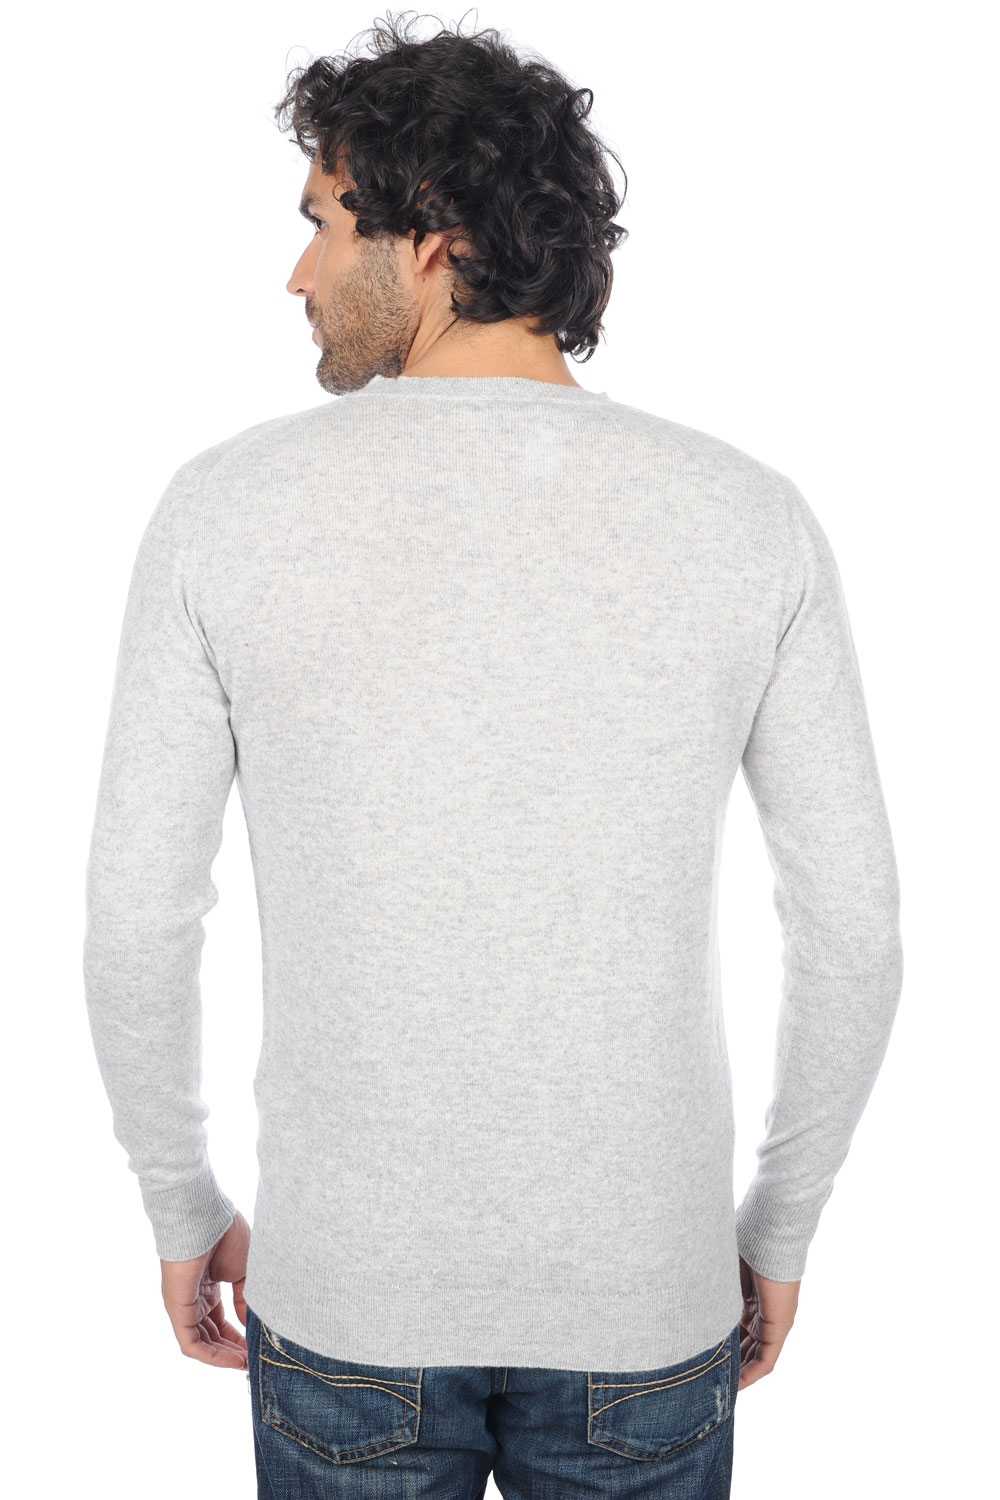 cashmere men basic sweaters at low prices tao clay m